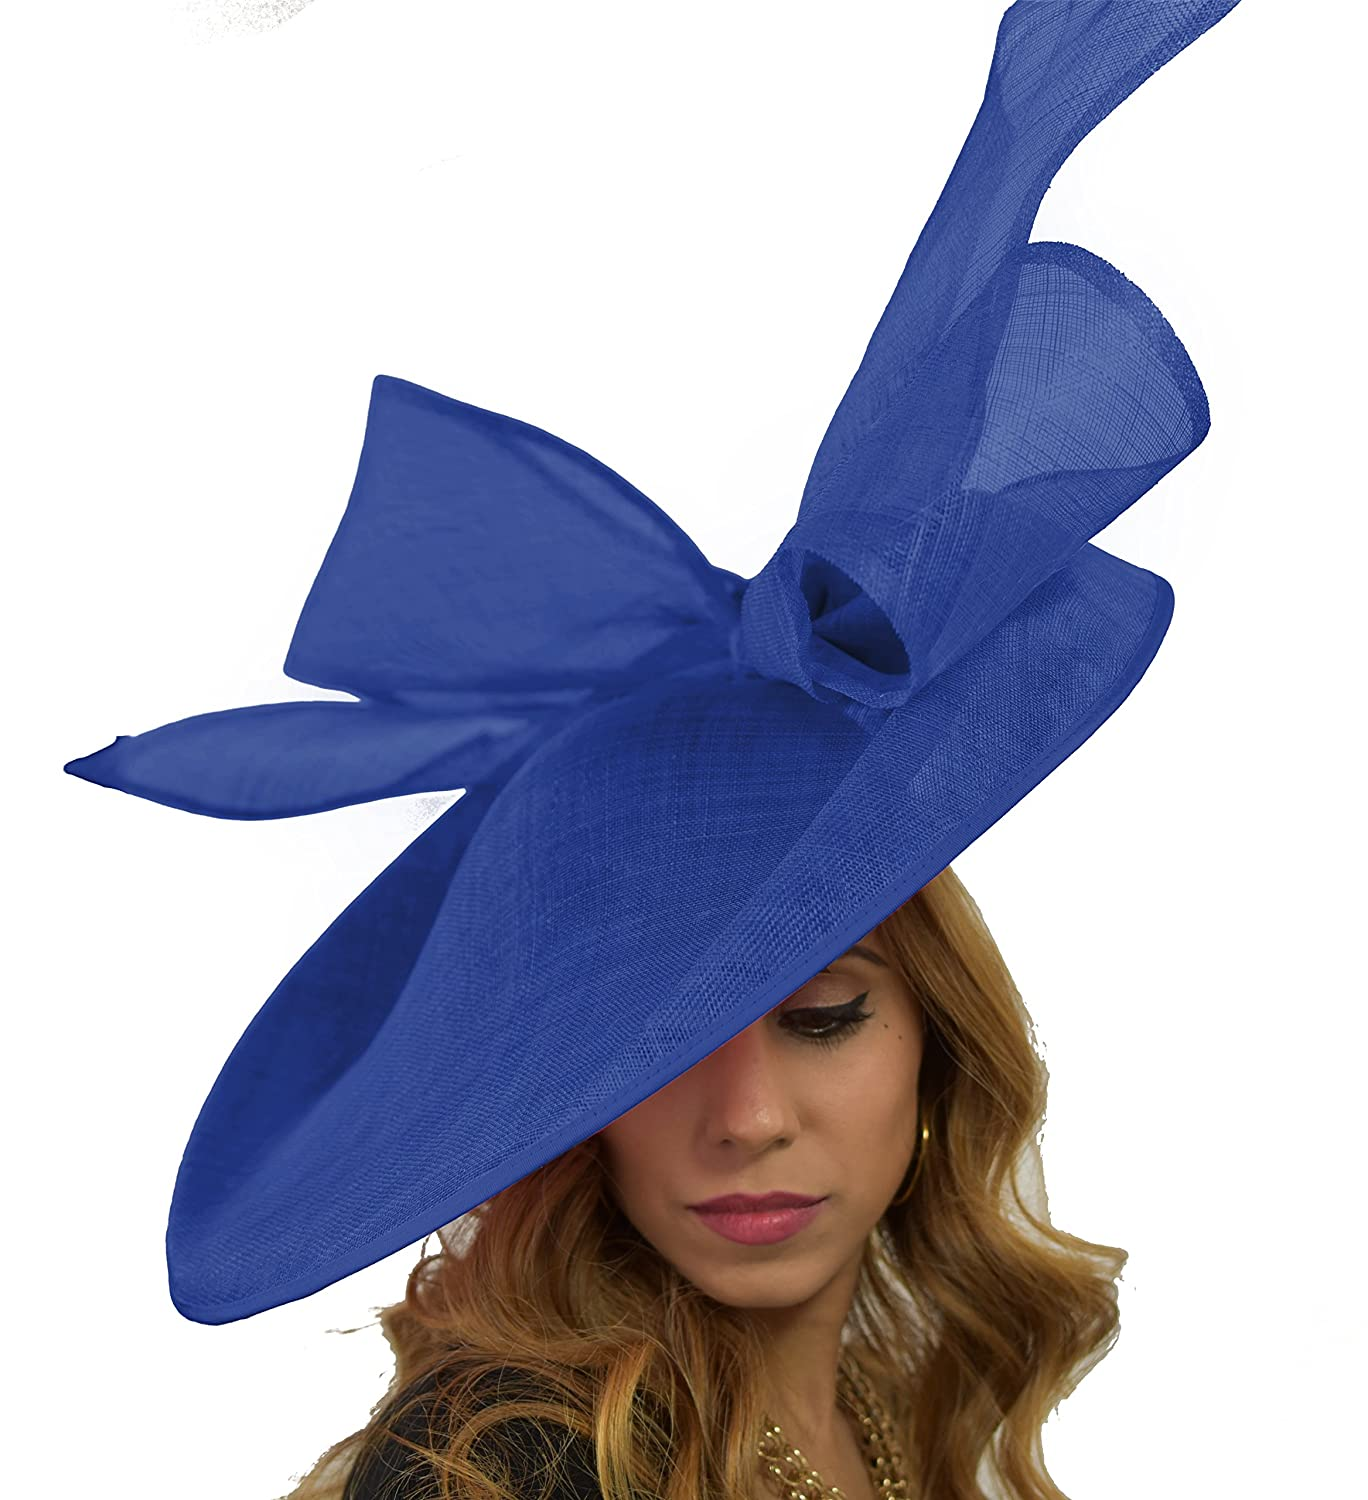 8504fc80a1f Hats By Cressida Royal Blue Wedding Fascinator Hat for Ascot ...